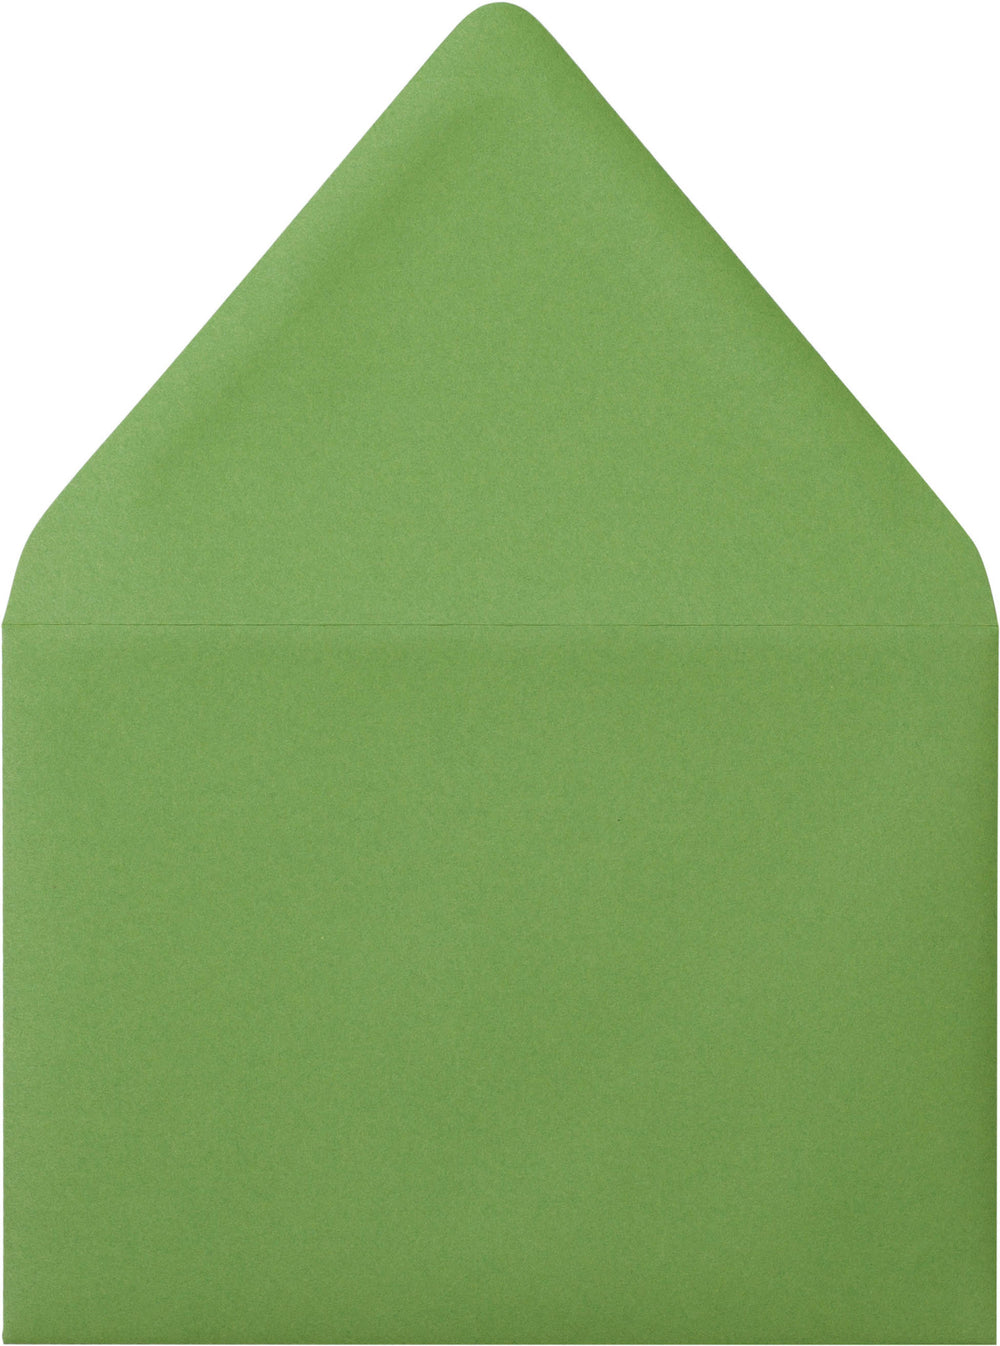 "A-2 Meadow Green Solid Euro Flap Envelopes (4 3/8"" x 5 3/4"")"